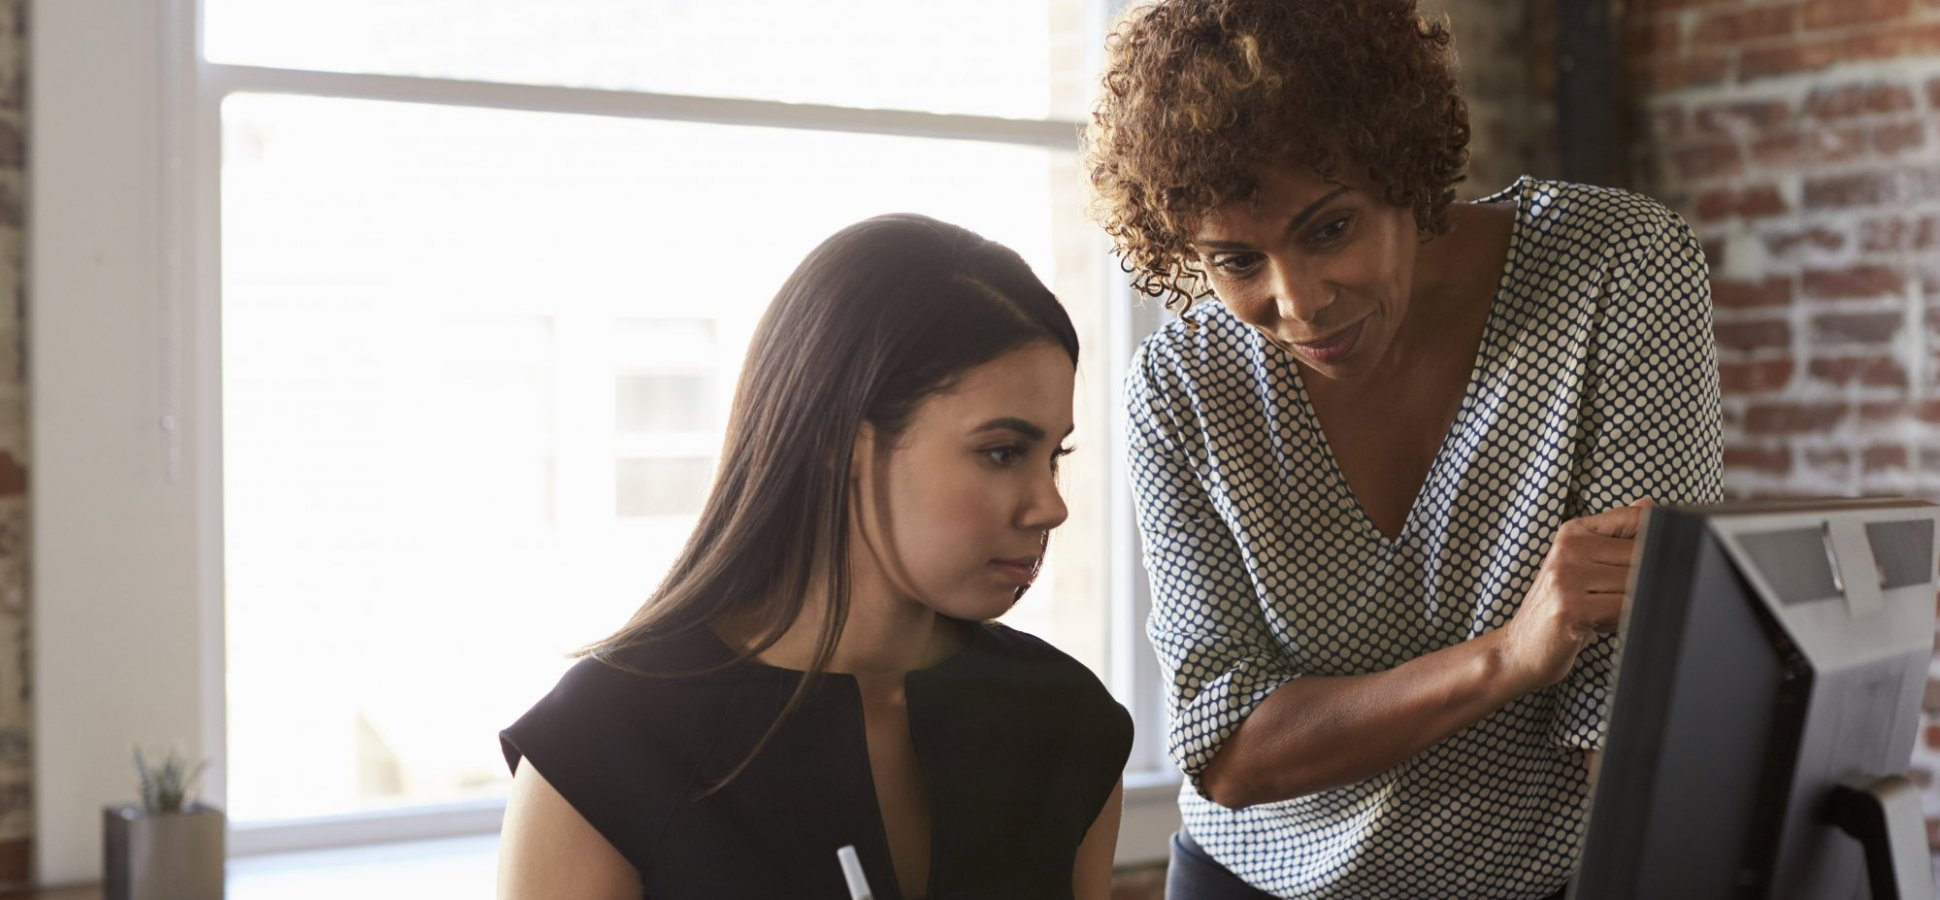 All CEOs Should Take the Time to Teach Entry-Level Employees This One Thing